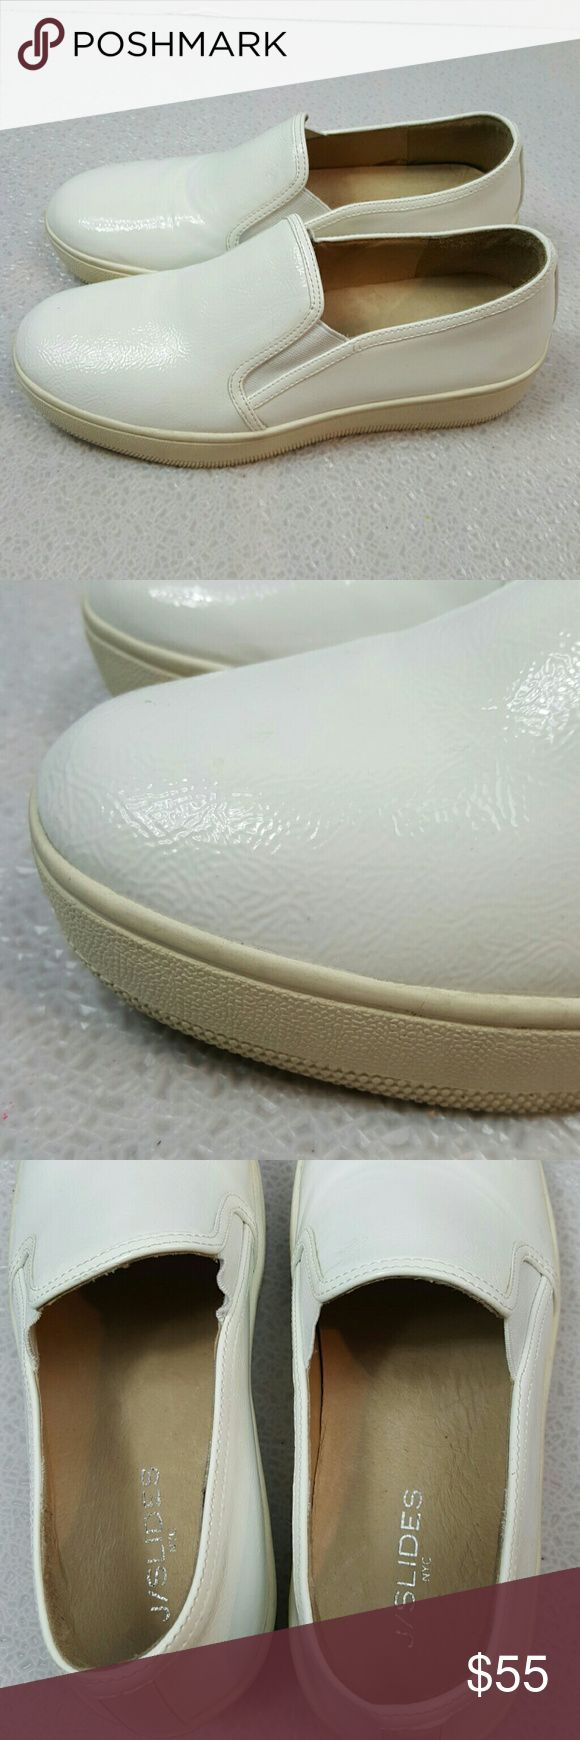 J/Slides NYC leather comfy loafers slip ons In gently pre owned condition J/Slides Shoes Flats & Loafers